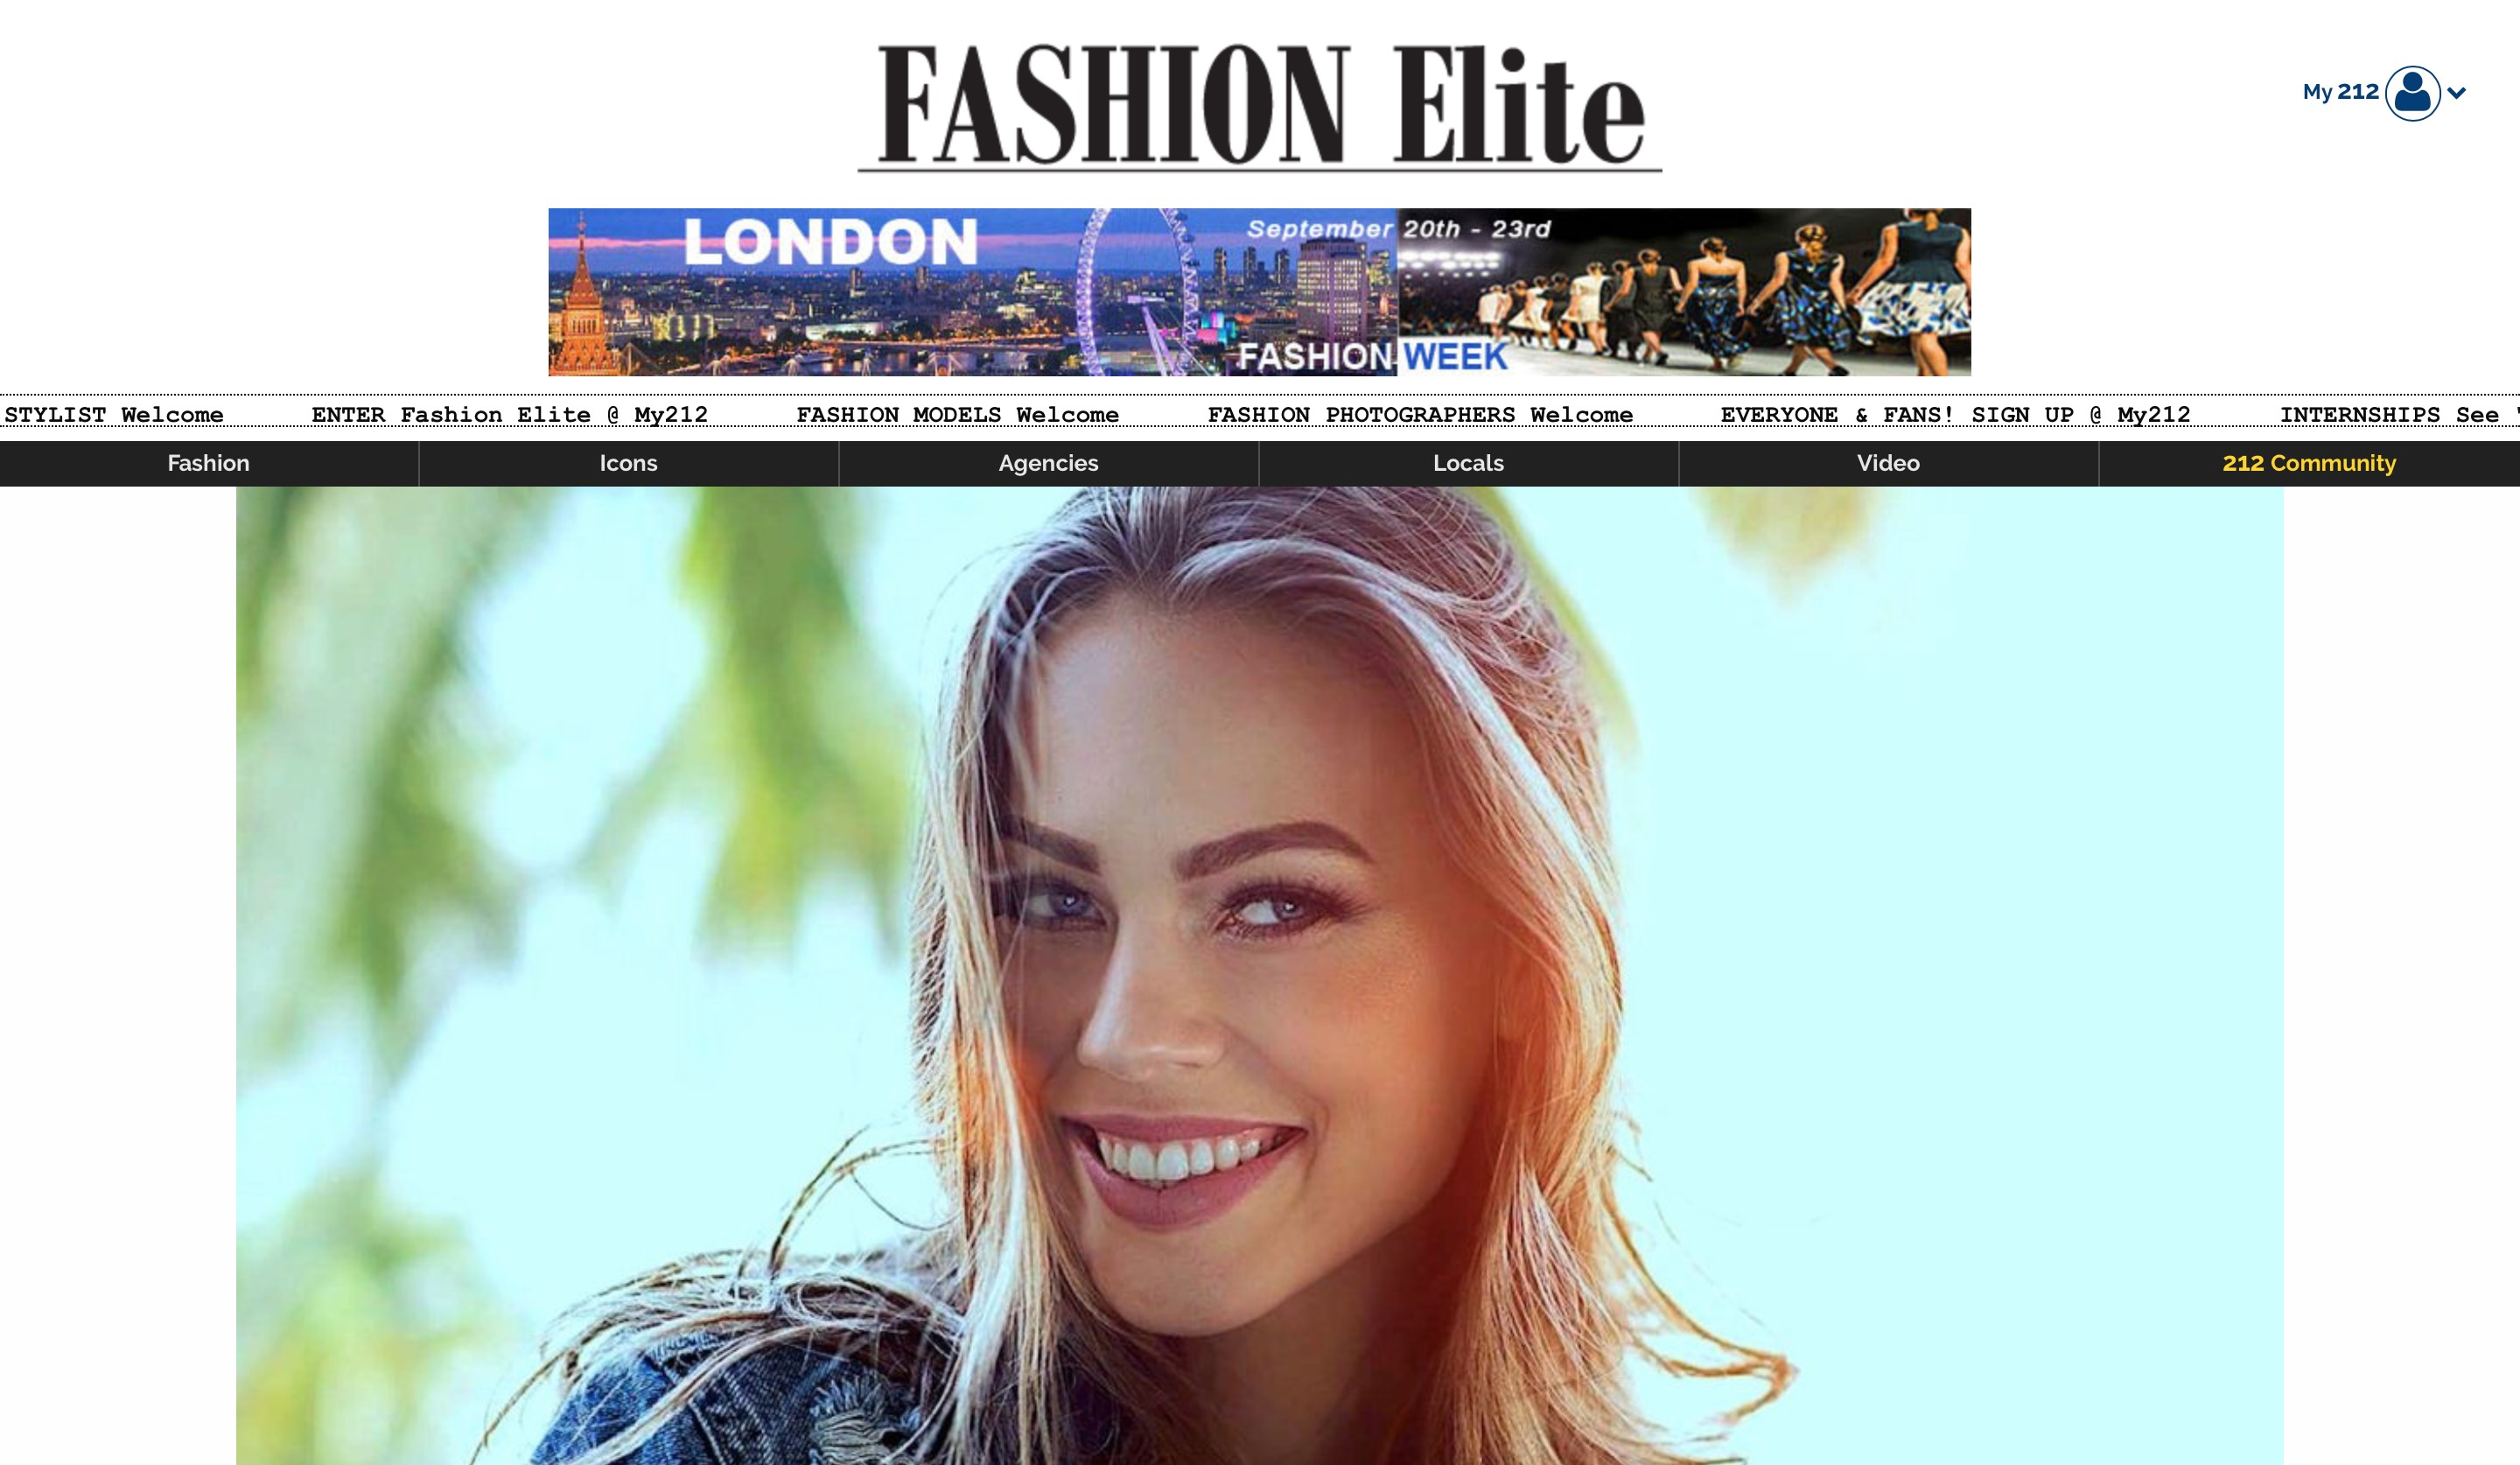 Fashion Elite home page screenshot